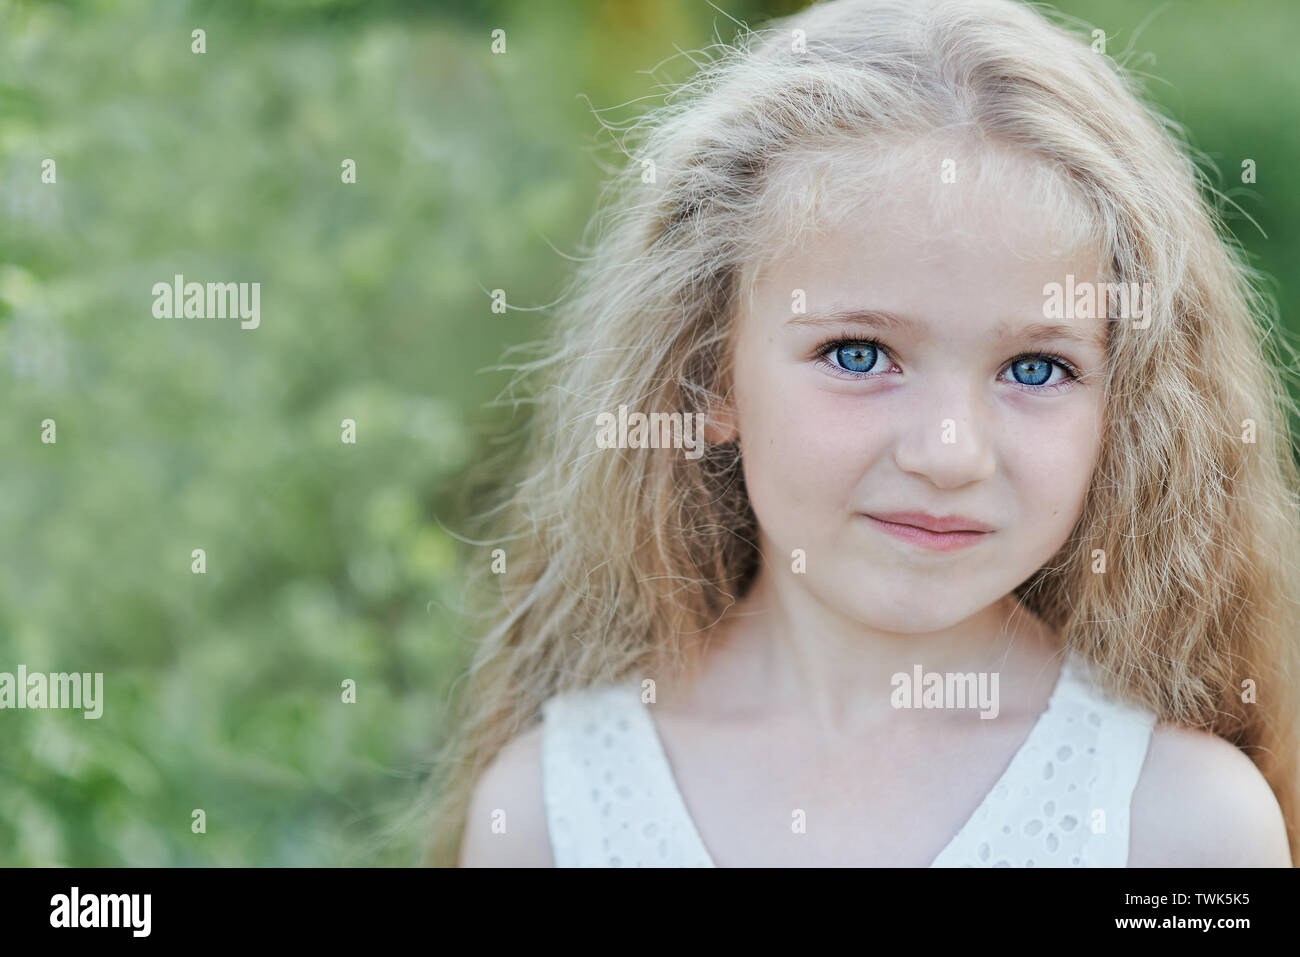 Close Up Portrait Of Beautiful Little Girl With Blonde Long Hair